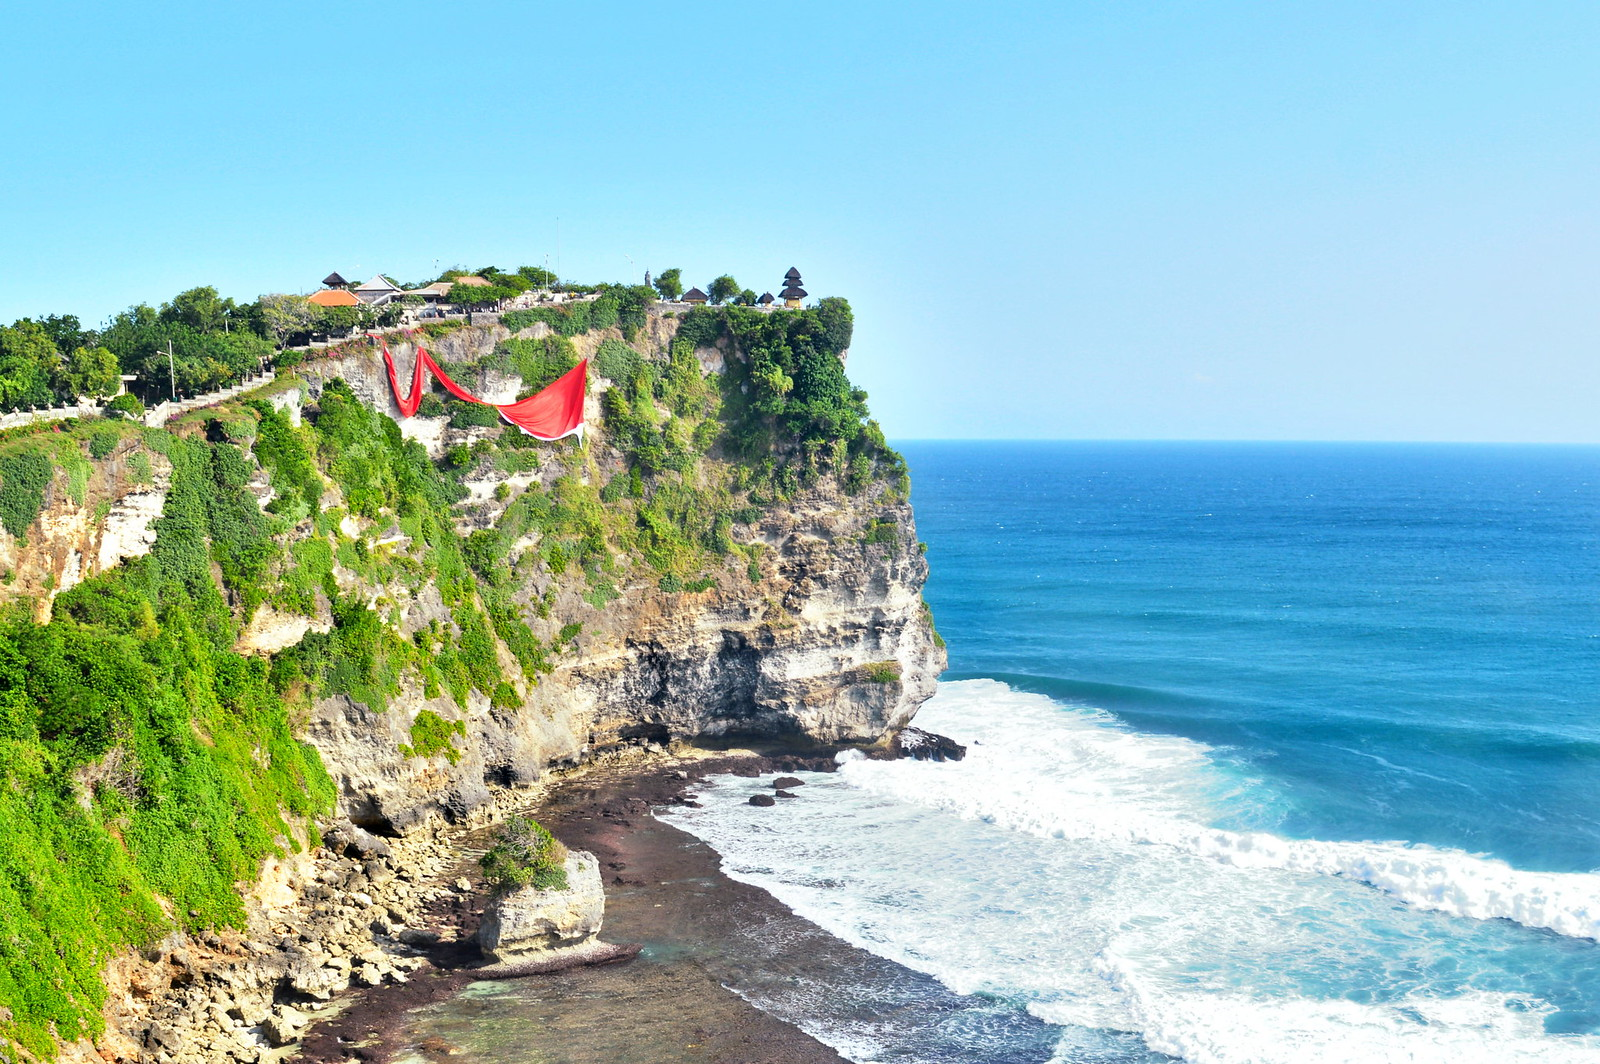 48 hours in Bali: Visit Uluwatu Temple